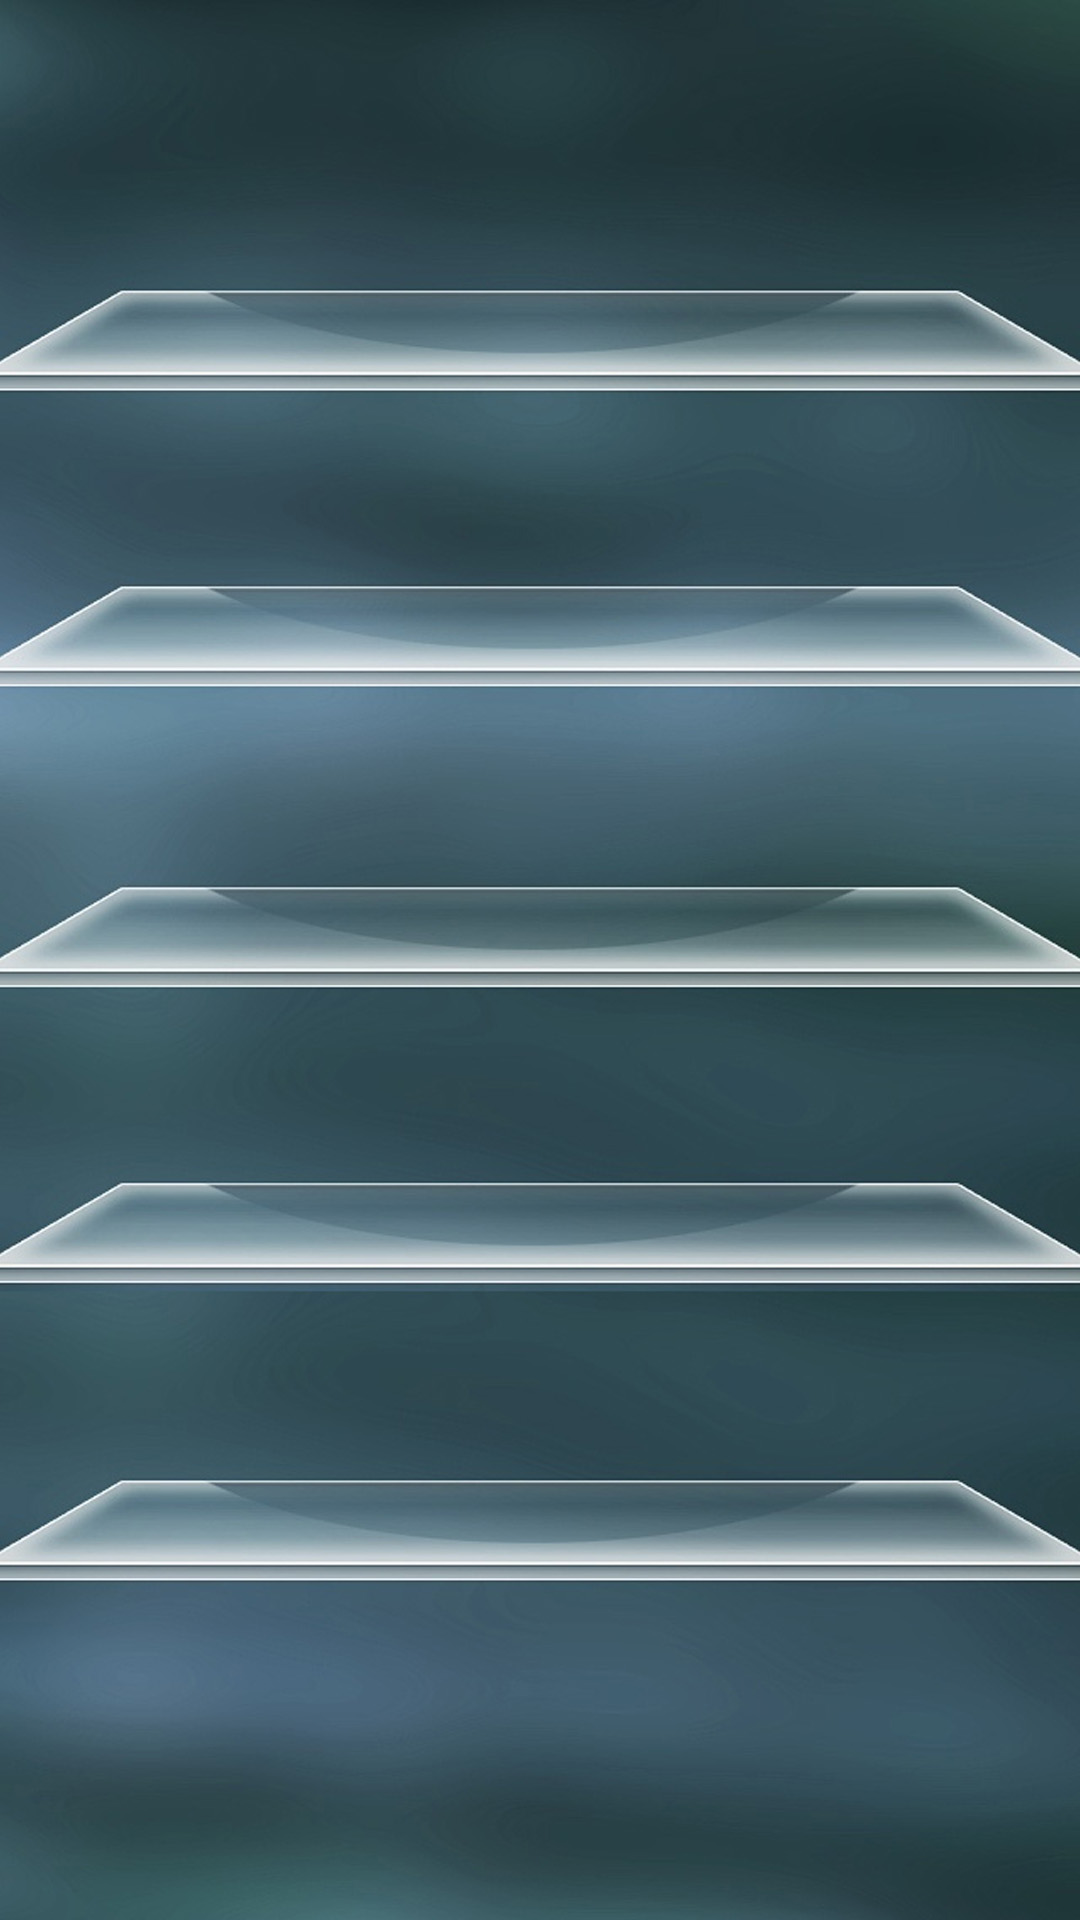 Shelf iPhone 6 Plus Wallpaper 87 iPhone 6 Plus Wallpapers HD 1080x1920